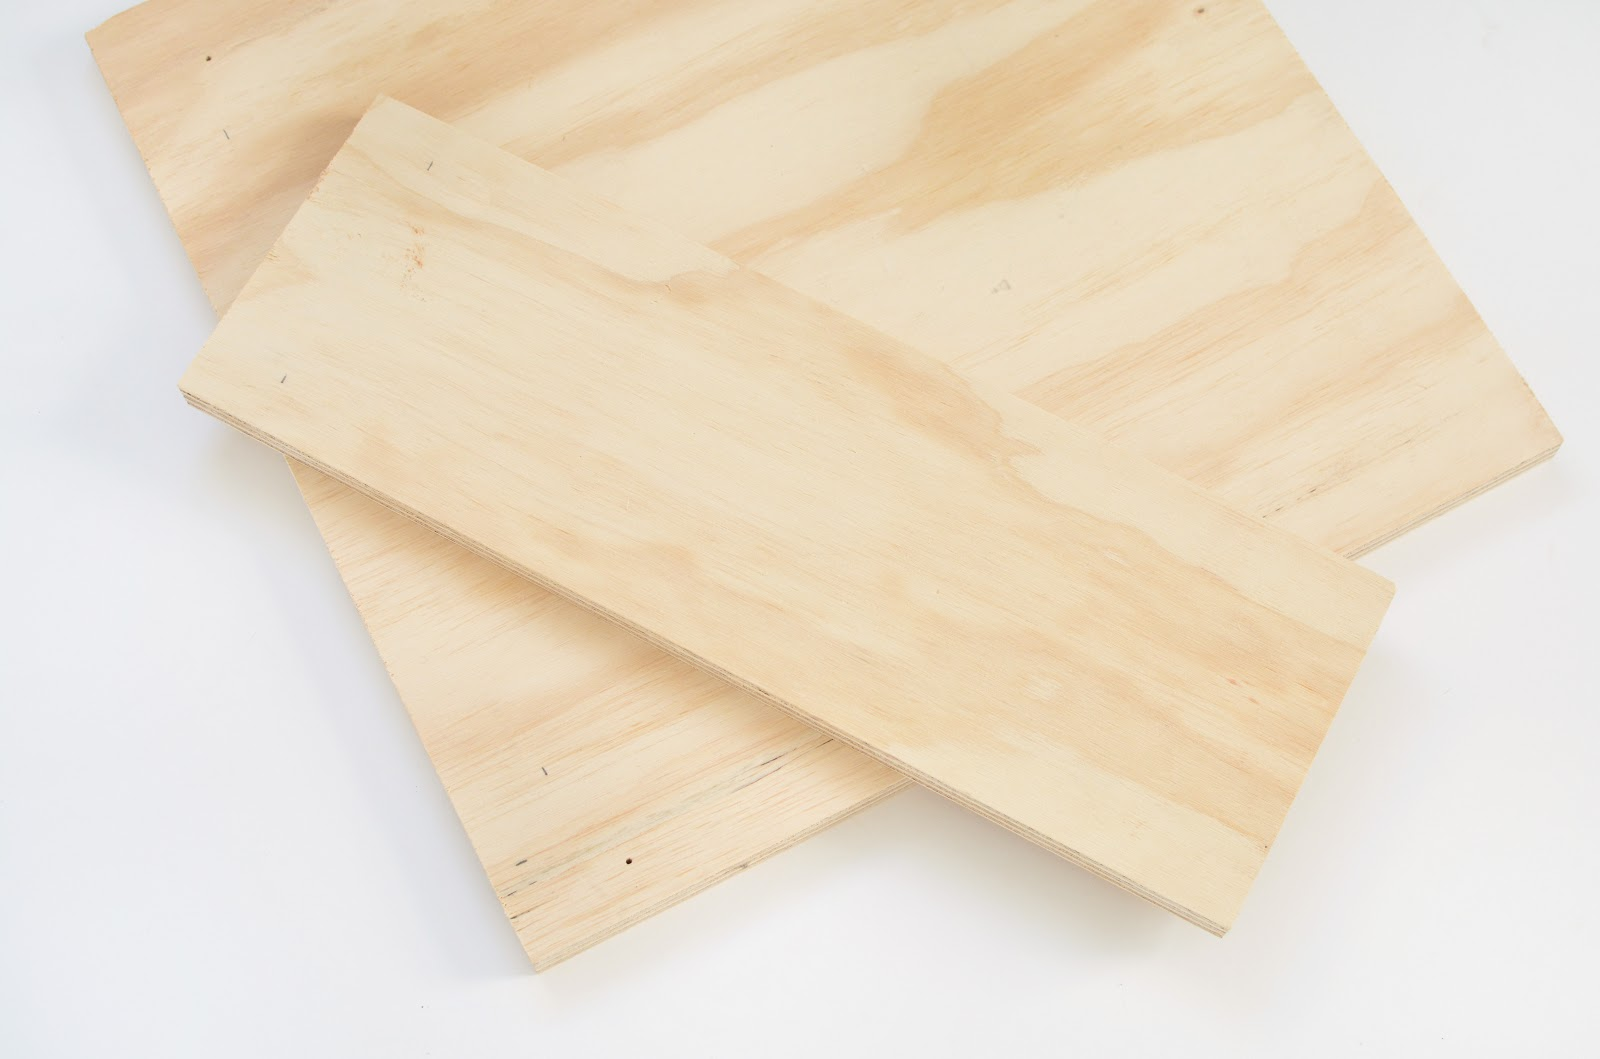 plywood or board